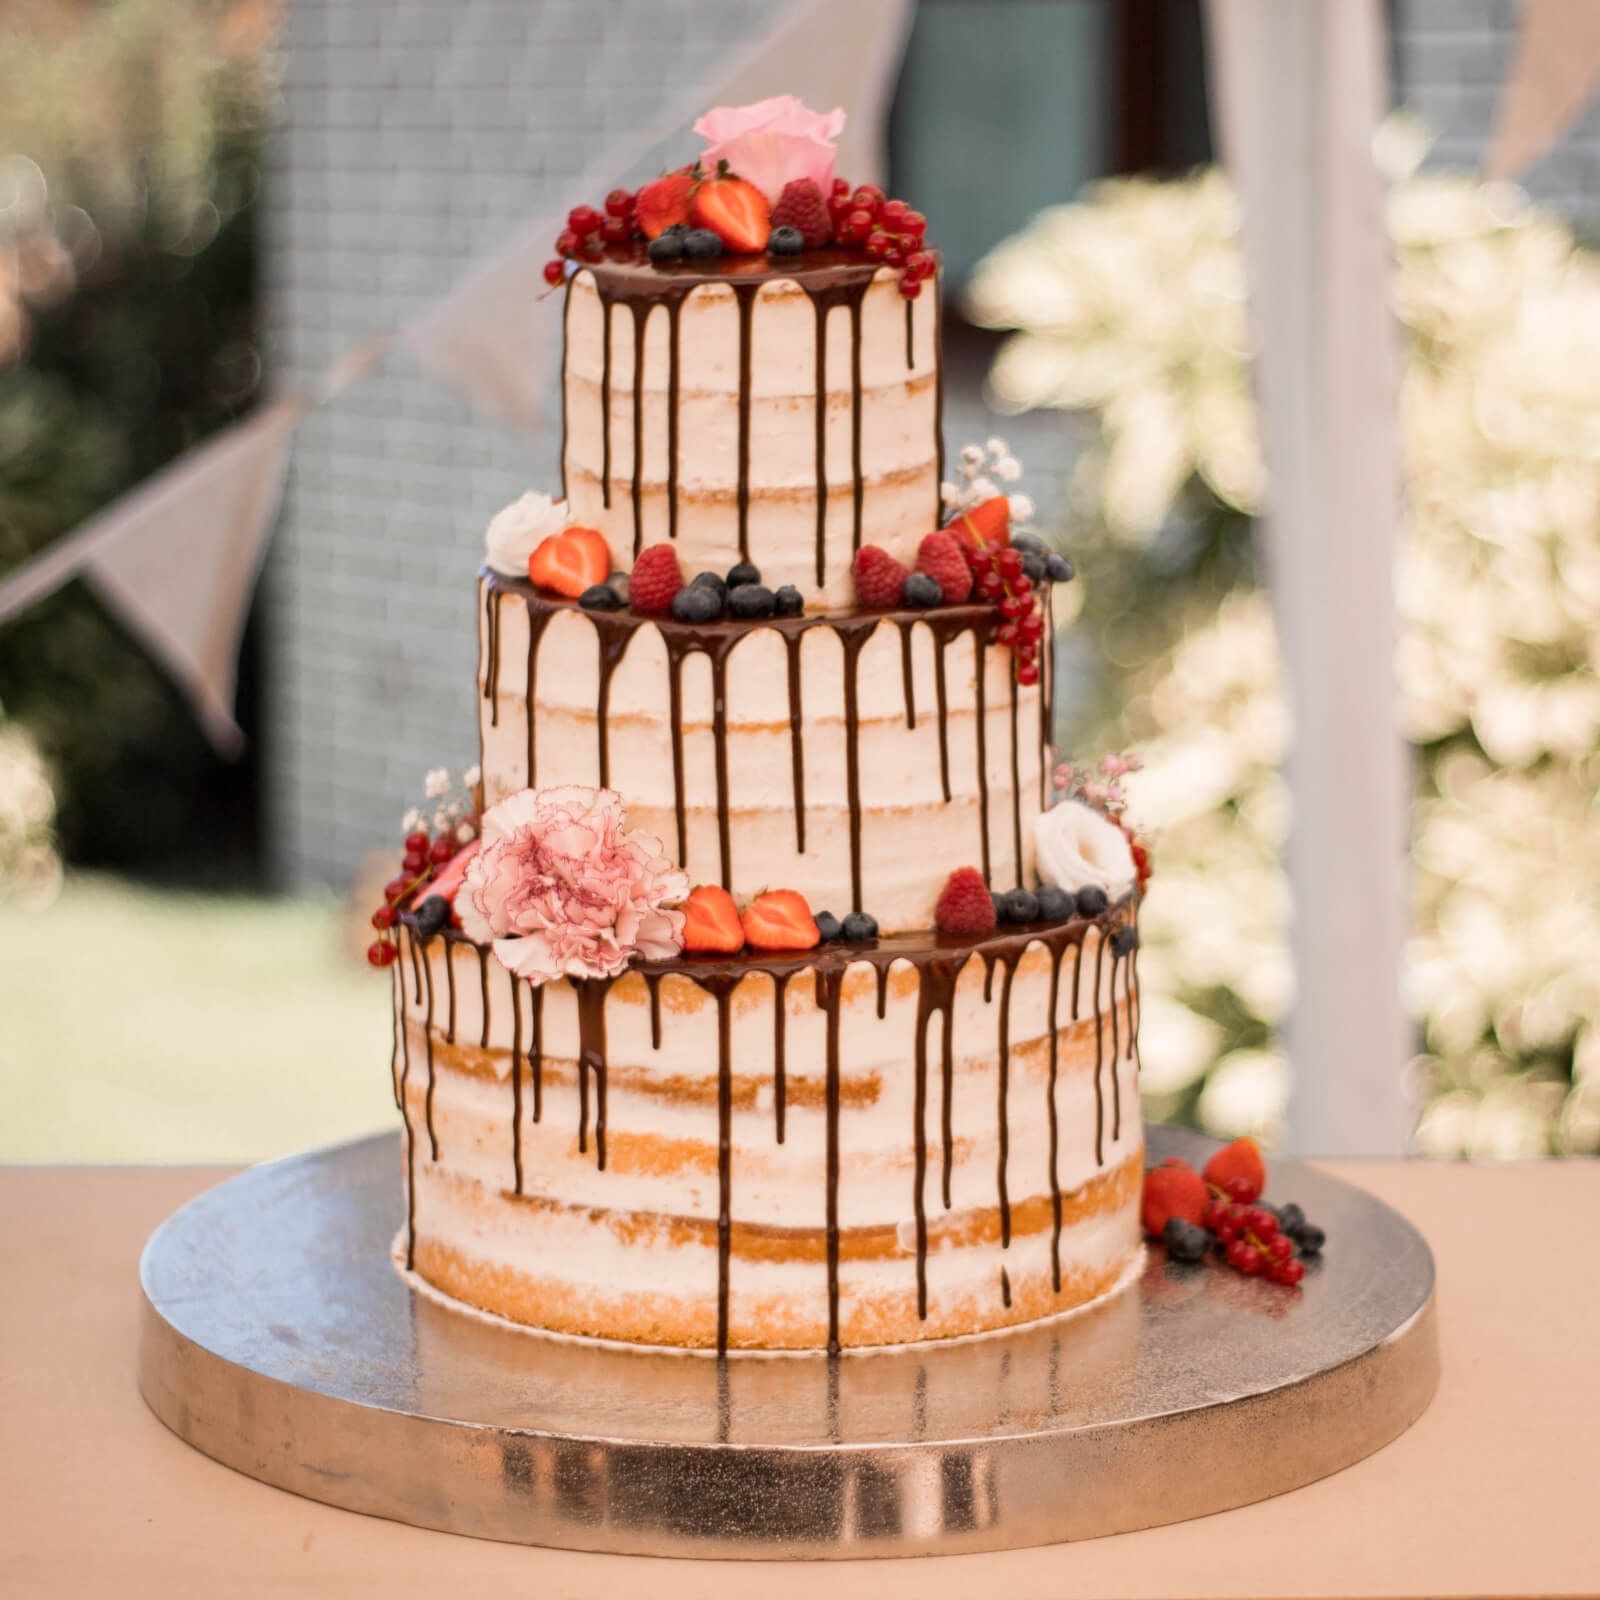 A Truly Scrumptious Cake | luxury wedding cakes| special